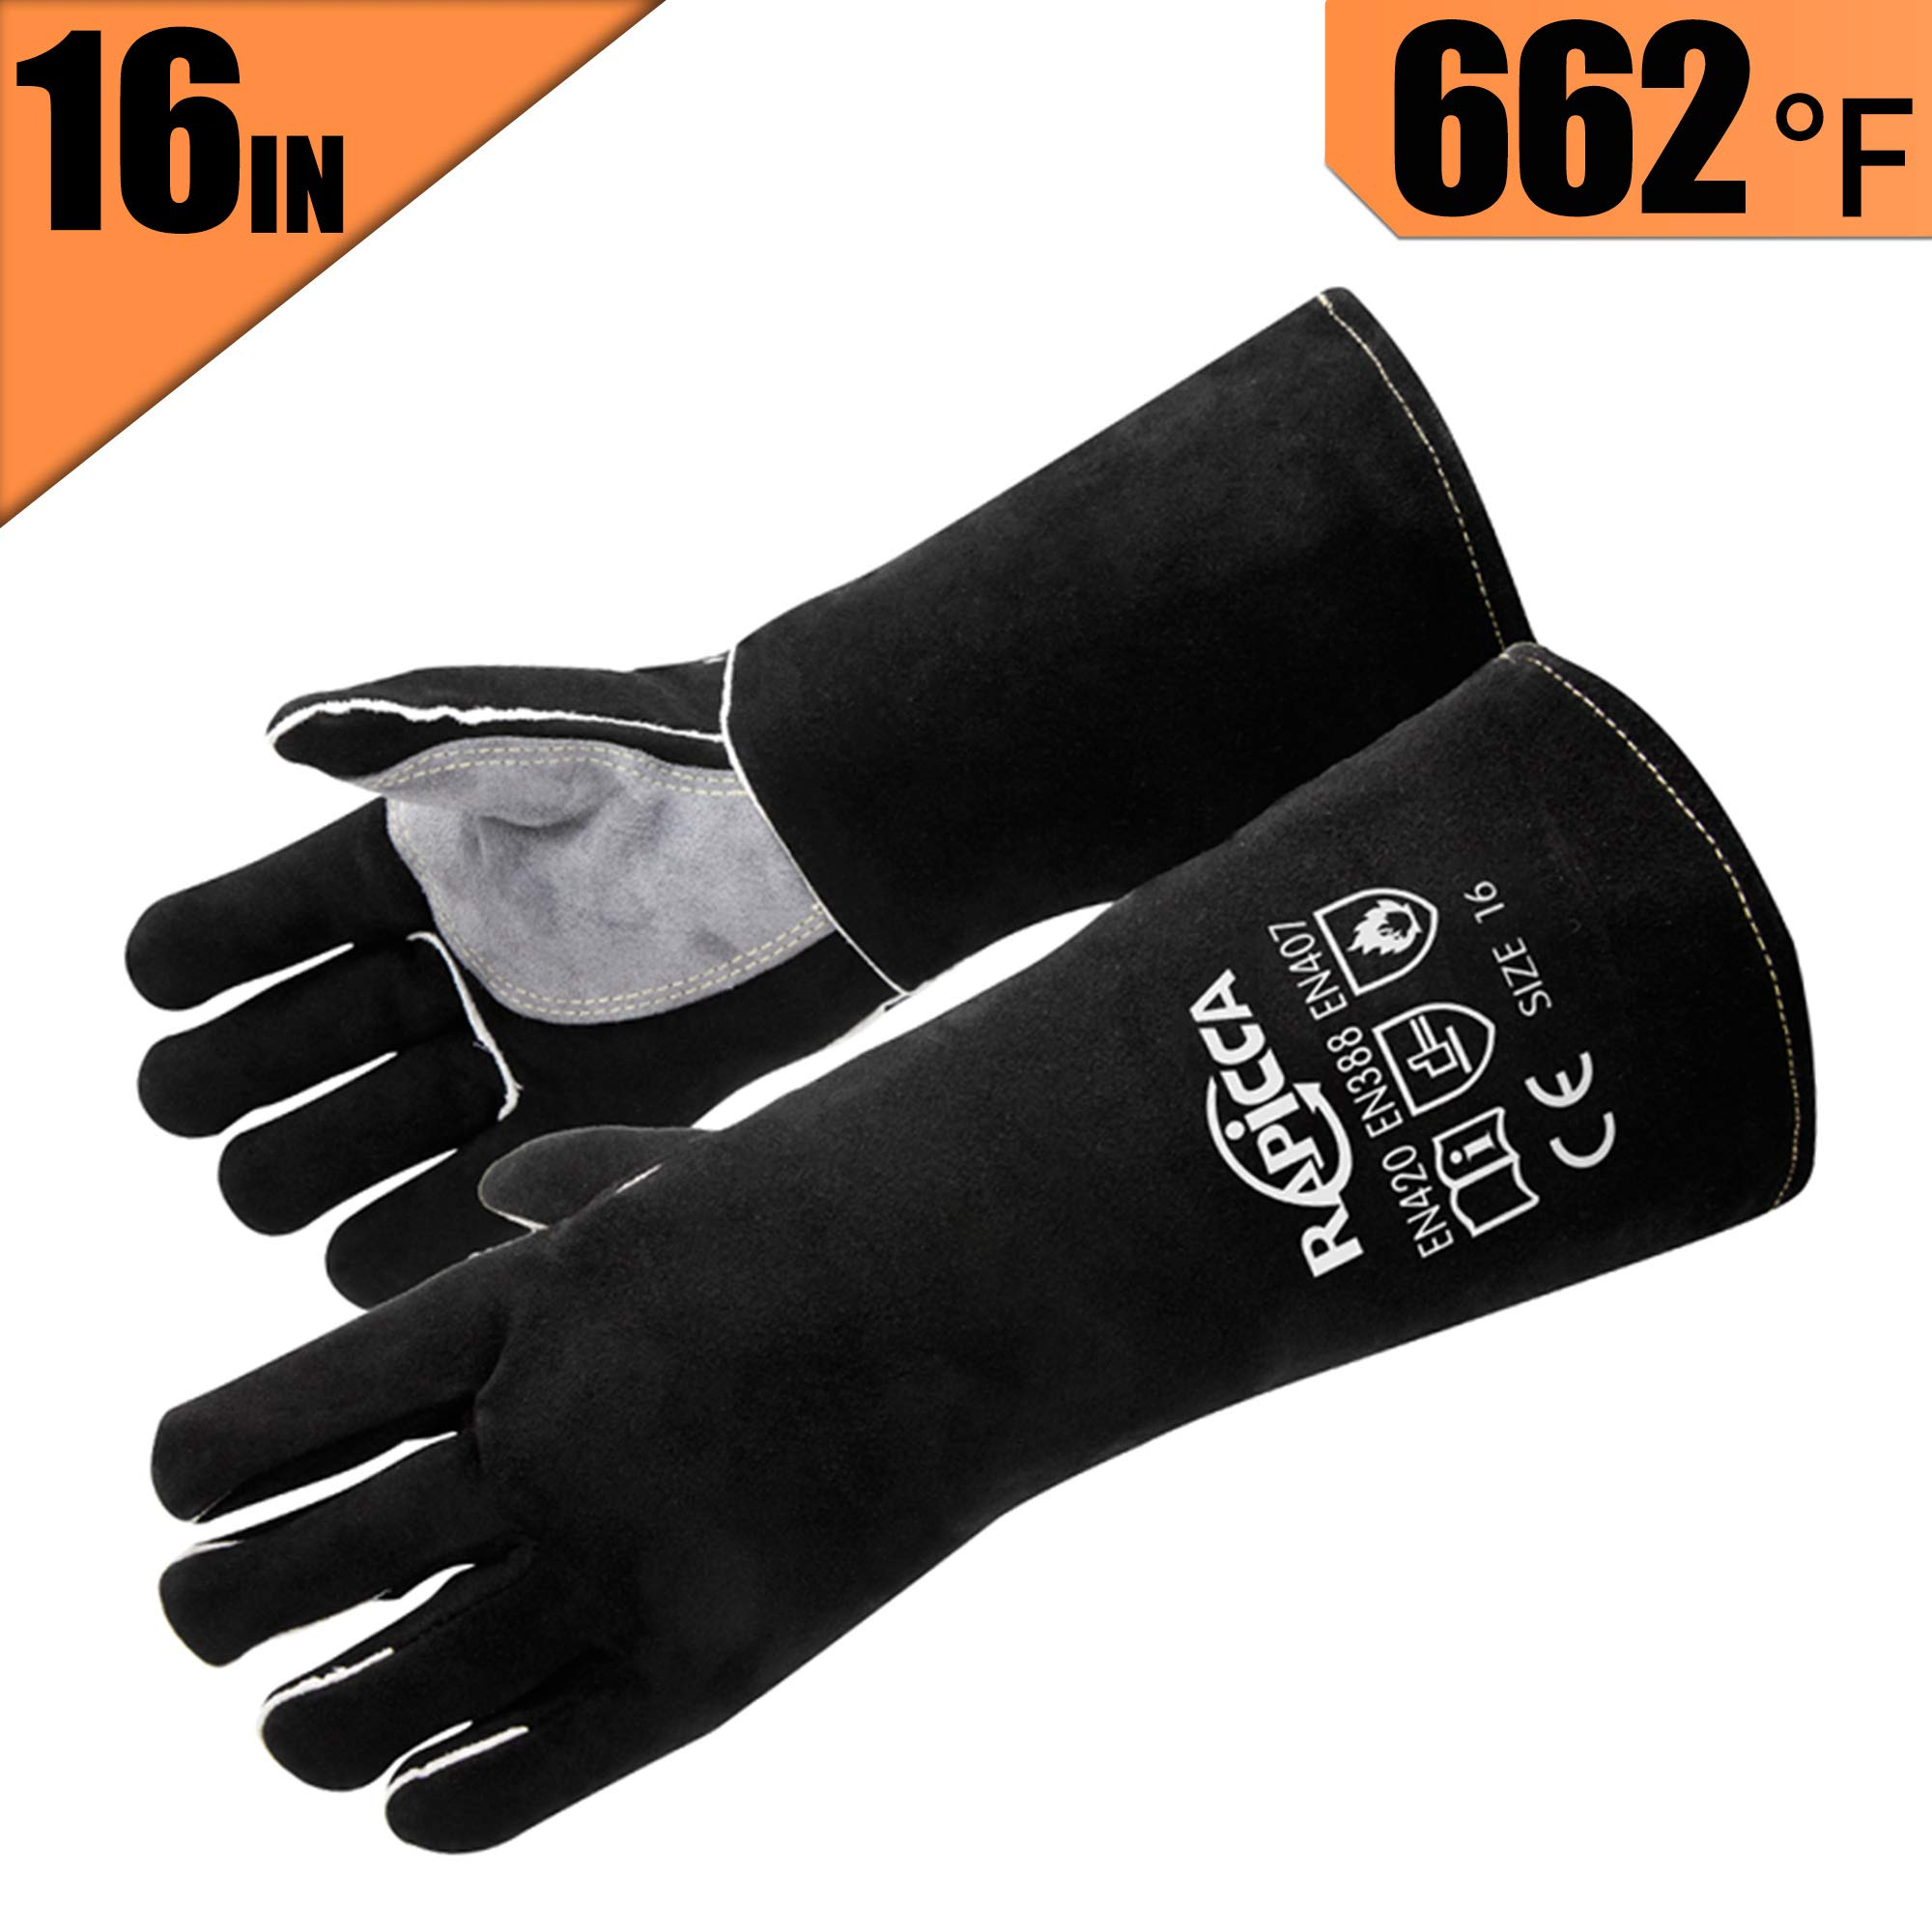 RAPICCA Leather Forge Welding Gloves Heat/Fire Resistant, Mitts for Oven/Grill/Fireplace/Furnace/Stove/Pot Holder/Tig Welder/Mig/BBQ/Animal handling glove with 16 inches Extra Long Sleeve – Black